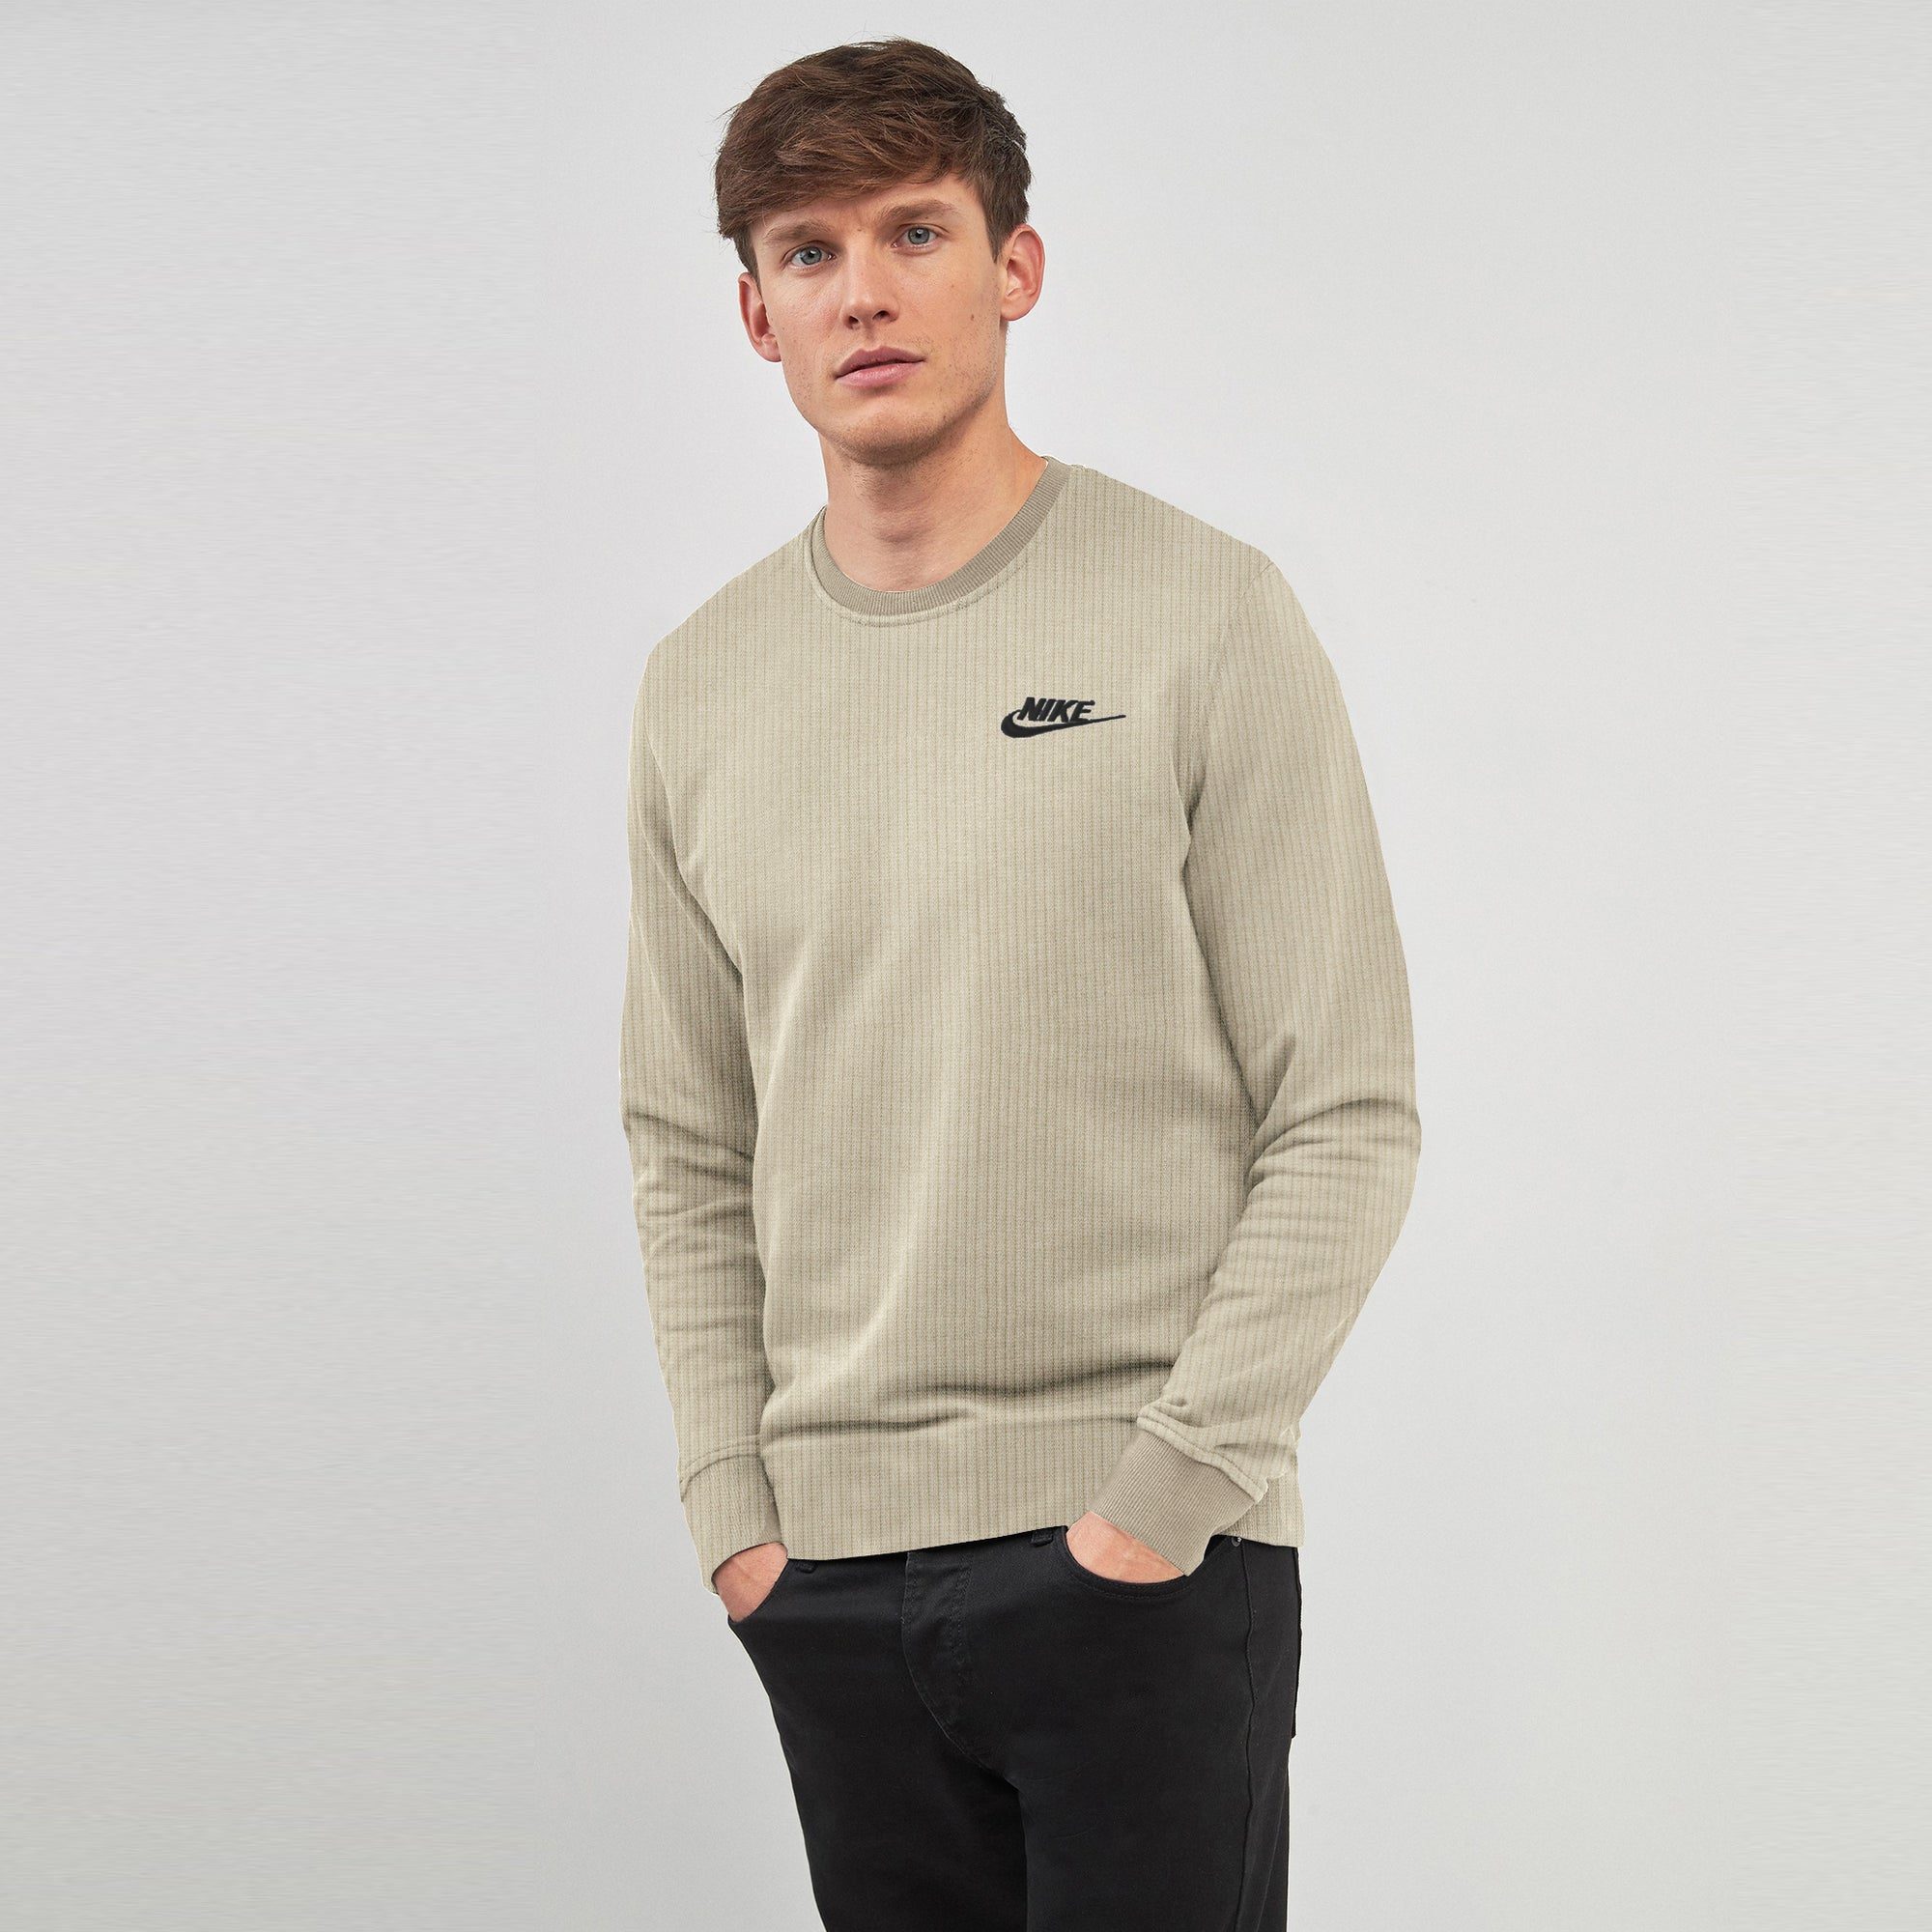 NK Crew Neck Thermal Sweatshirt For Men-Camel-SP1334